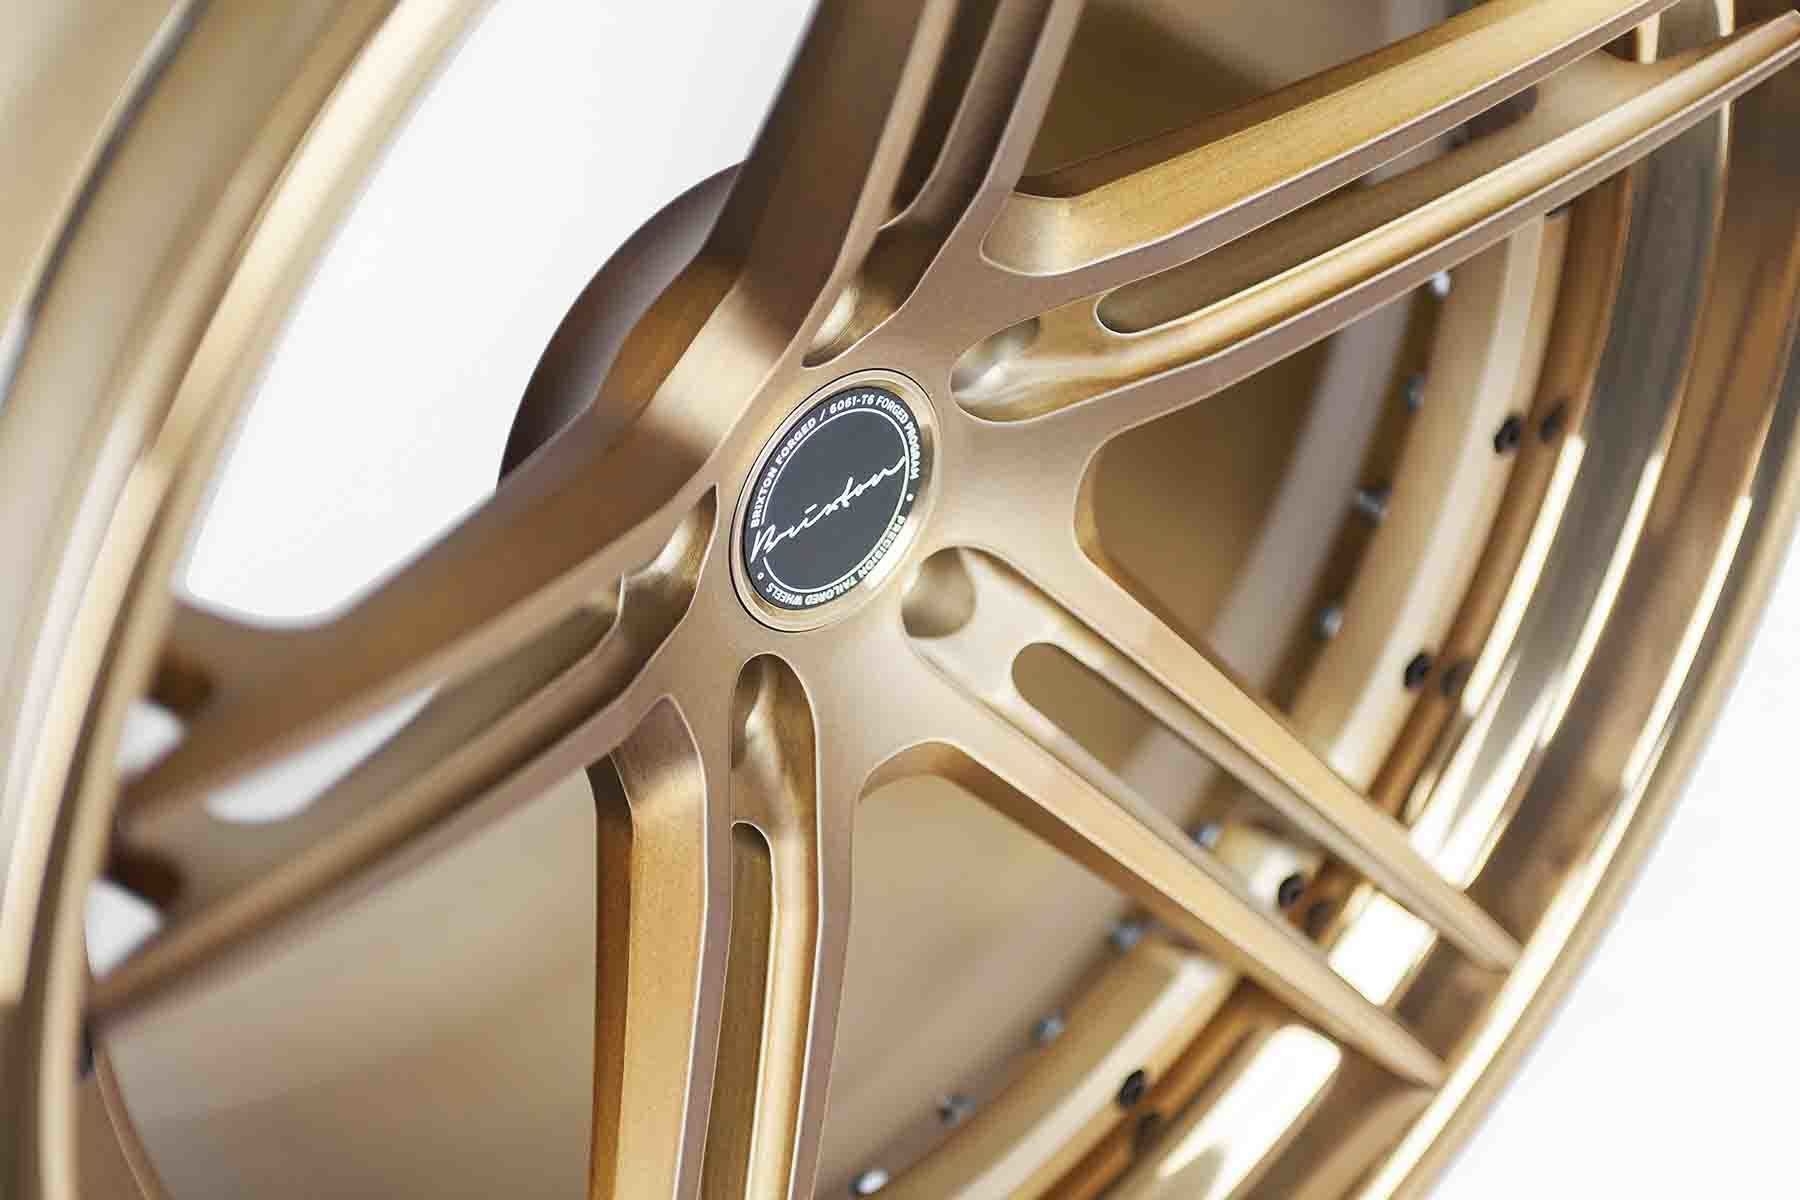 images-products-1-2207-232974495-brixton-forged-m52-targa-series-concave-brushed-olympic-bronze-03.jpg